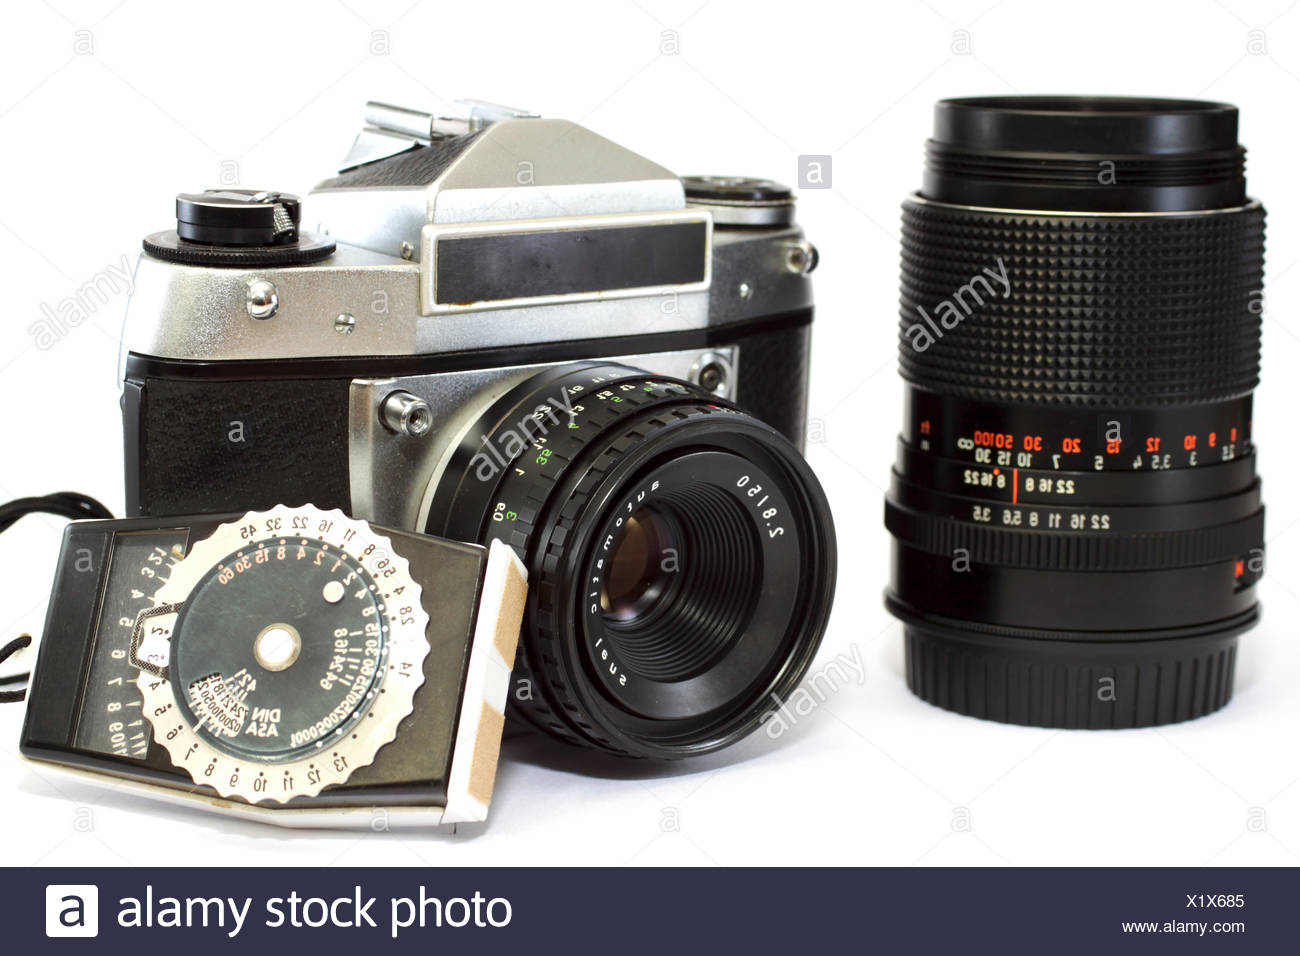 Analog SLR - Stock Image